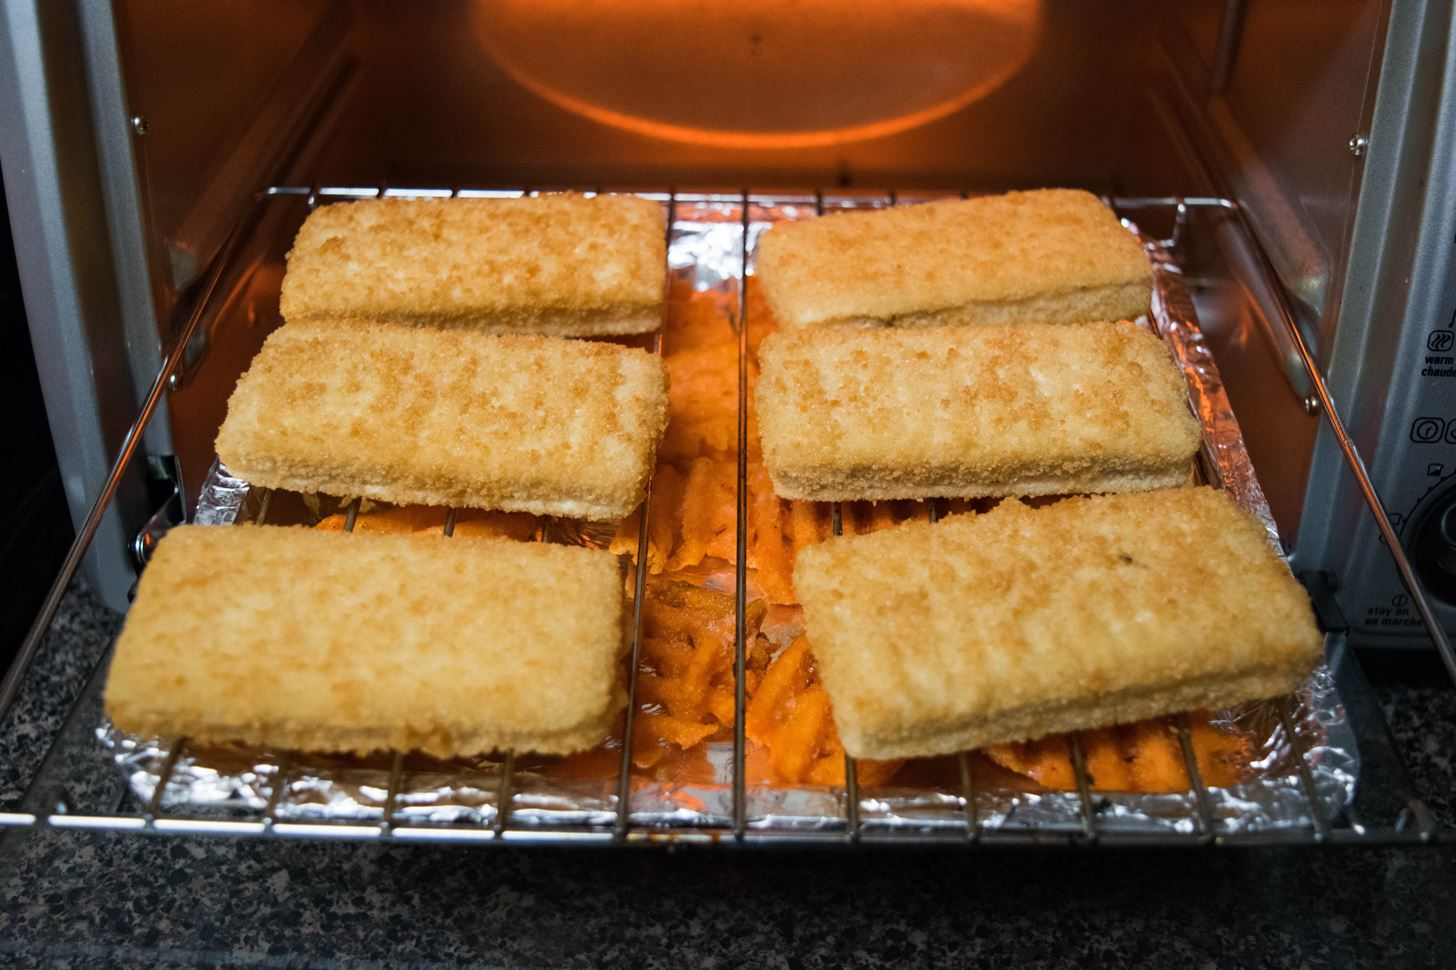 Double Your Snackage with This Brilliantly Lazy Toaster Oven Hack